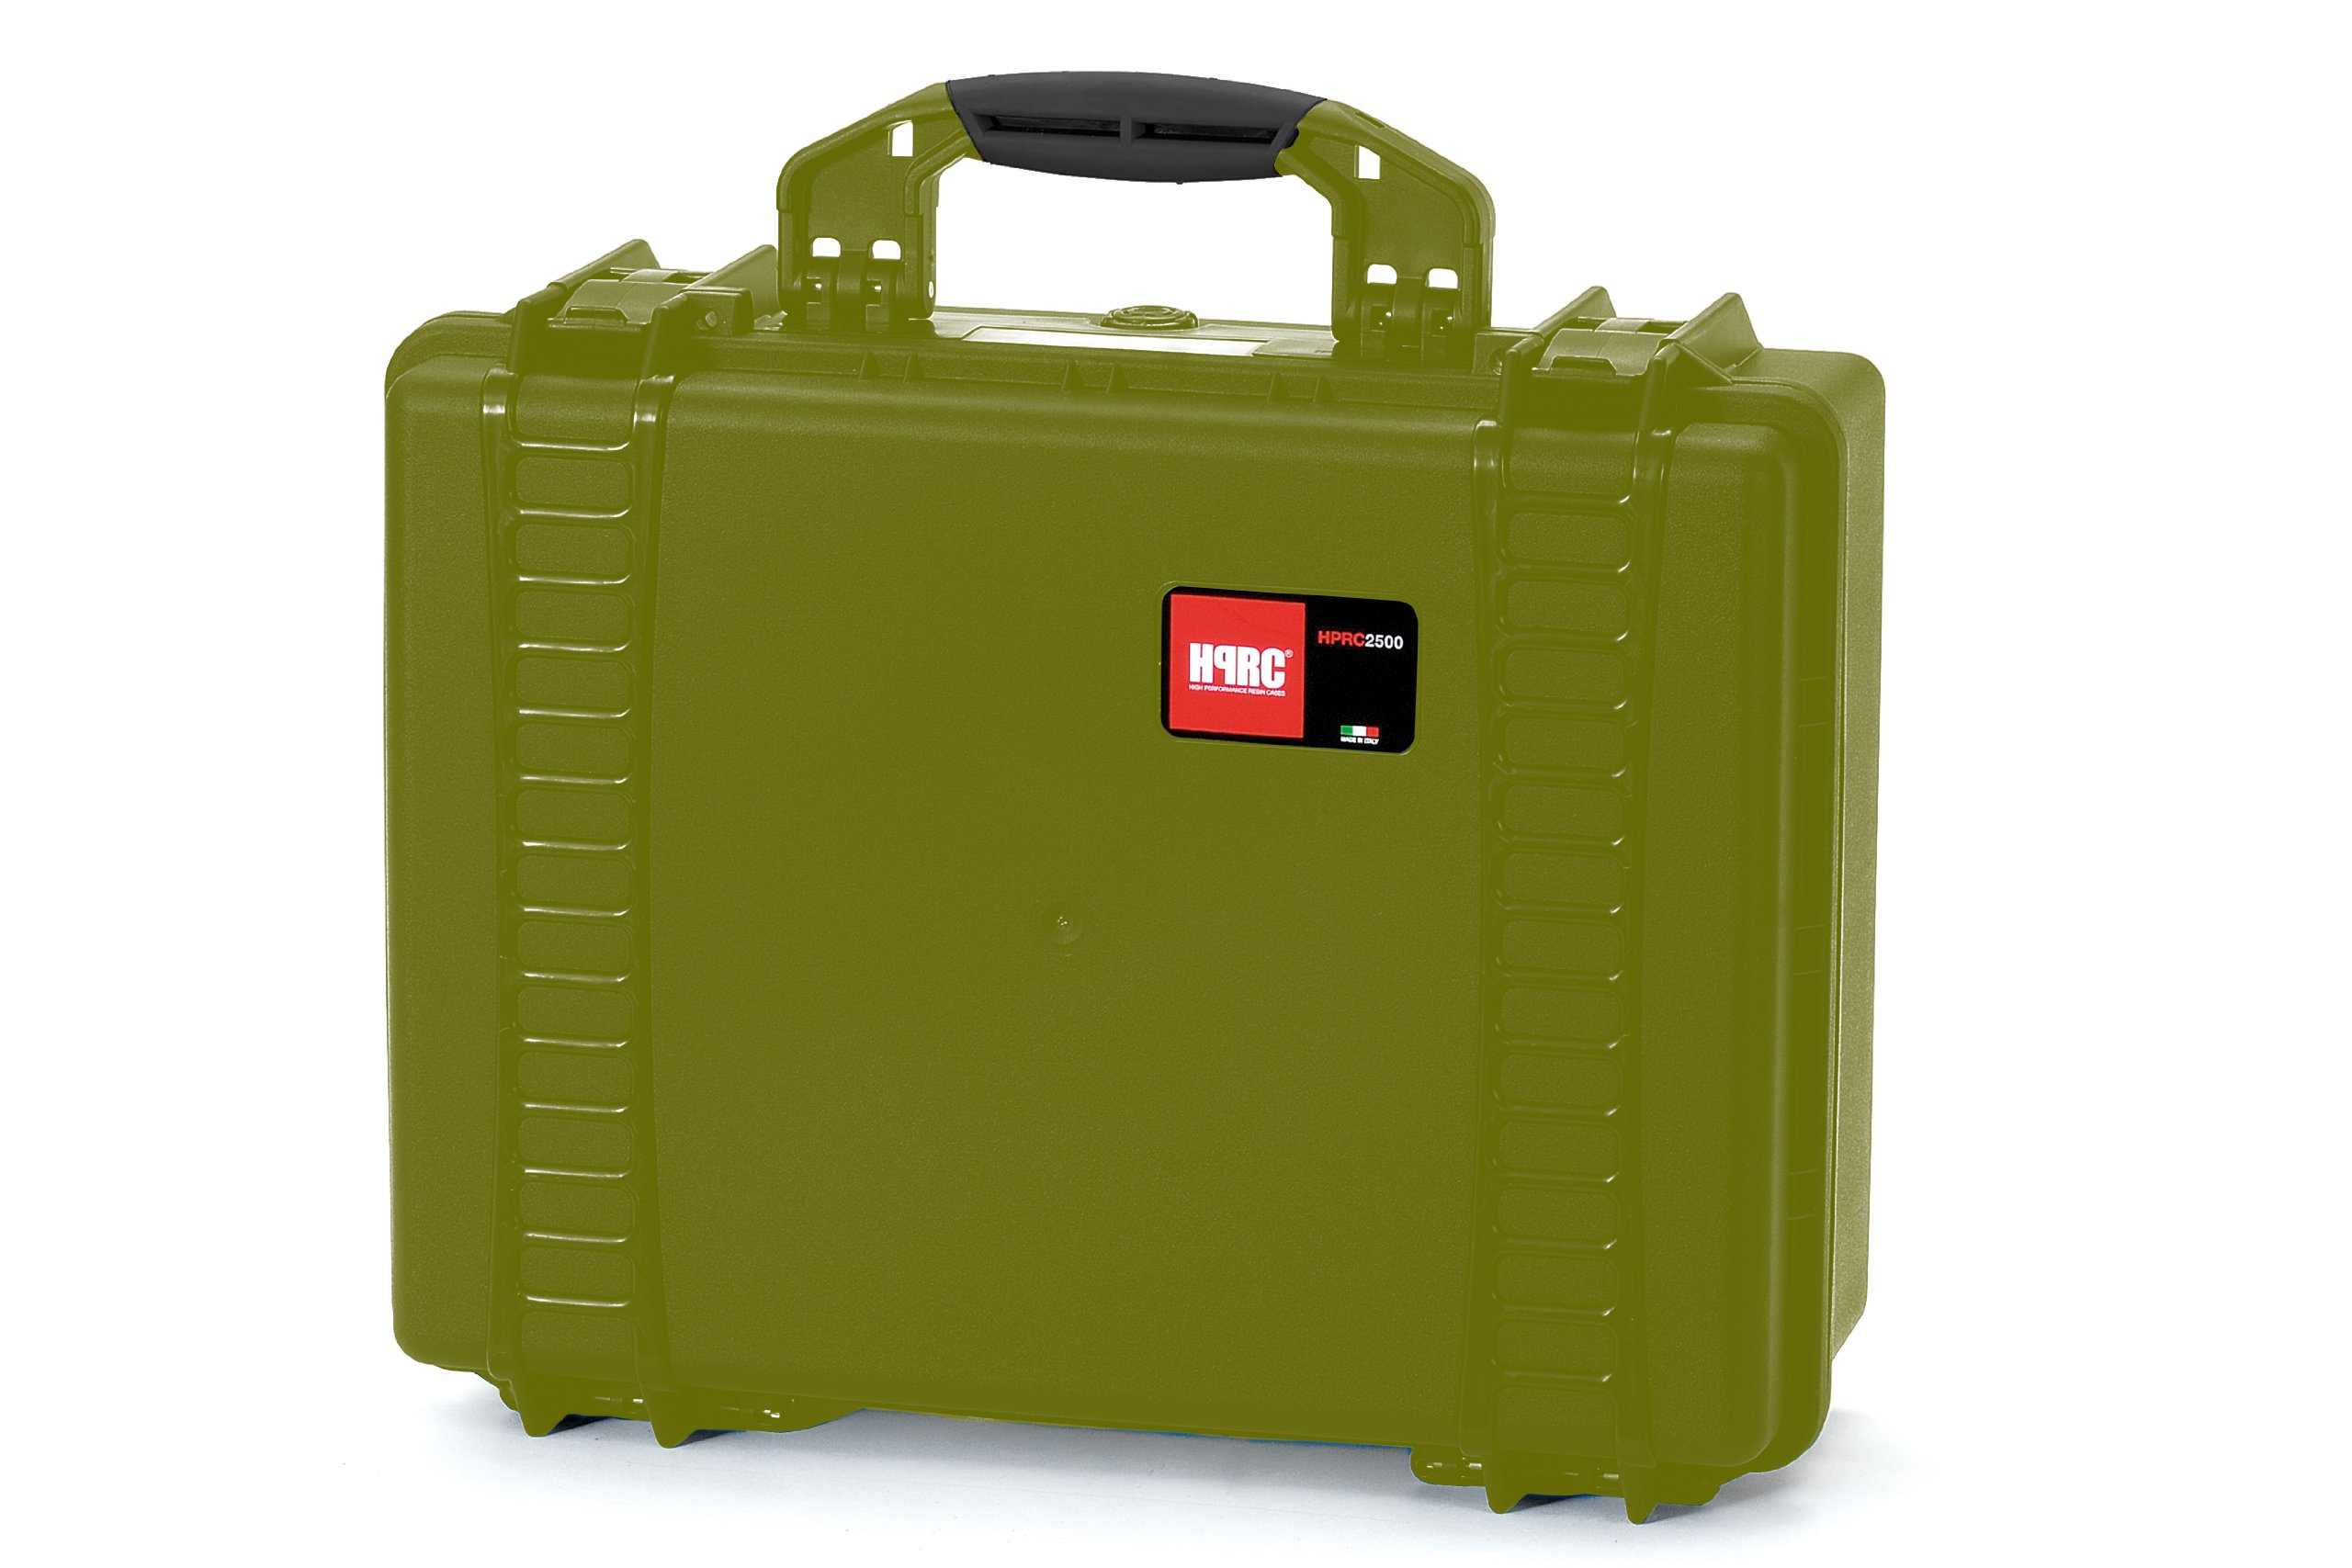 HPRC 2500F Hard Case with Cubed Foam (Olive)